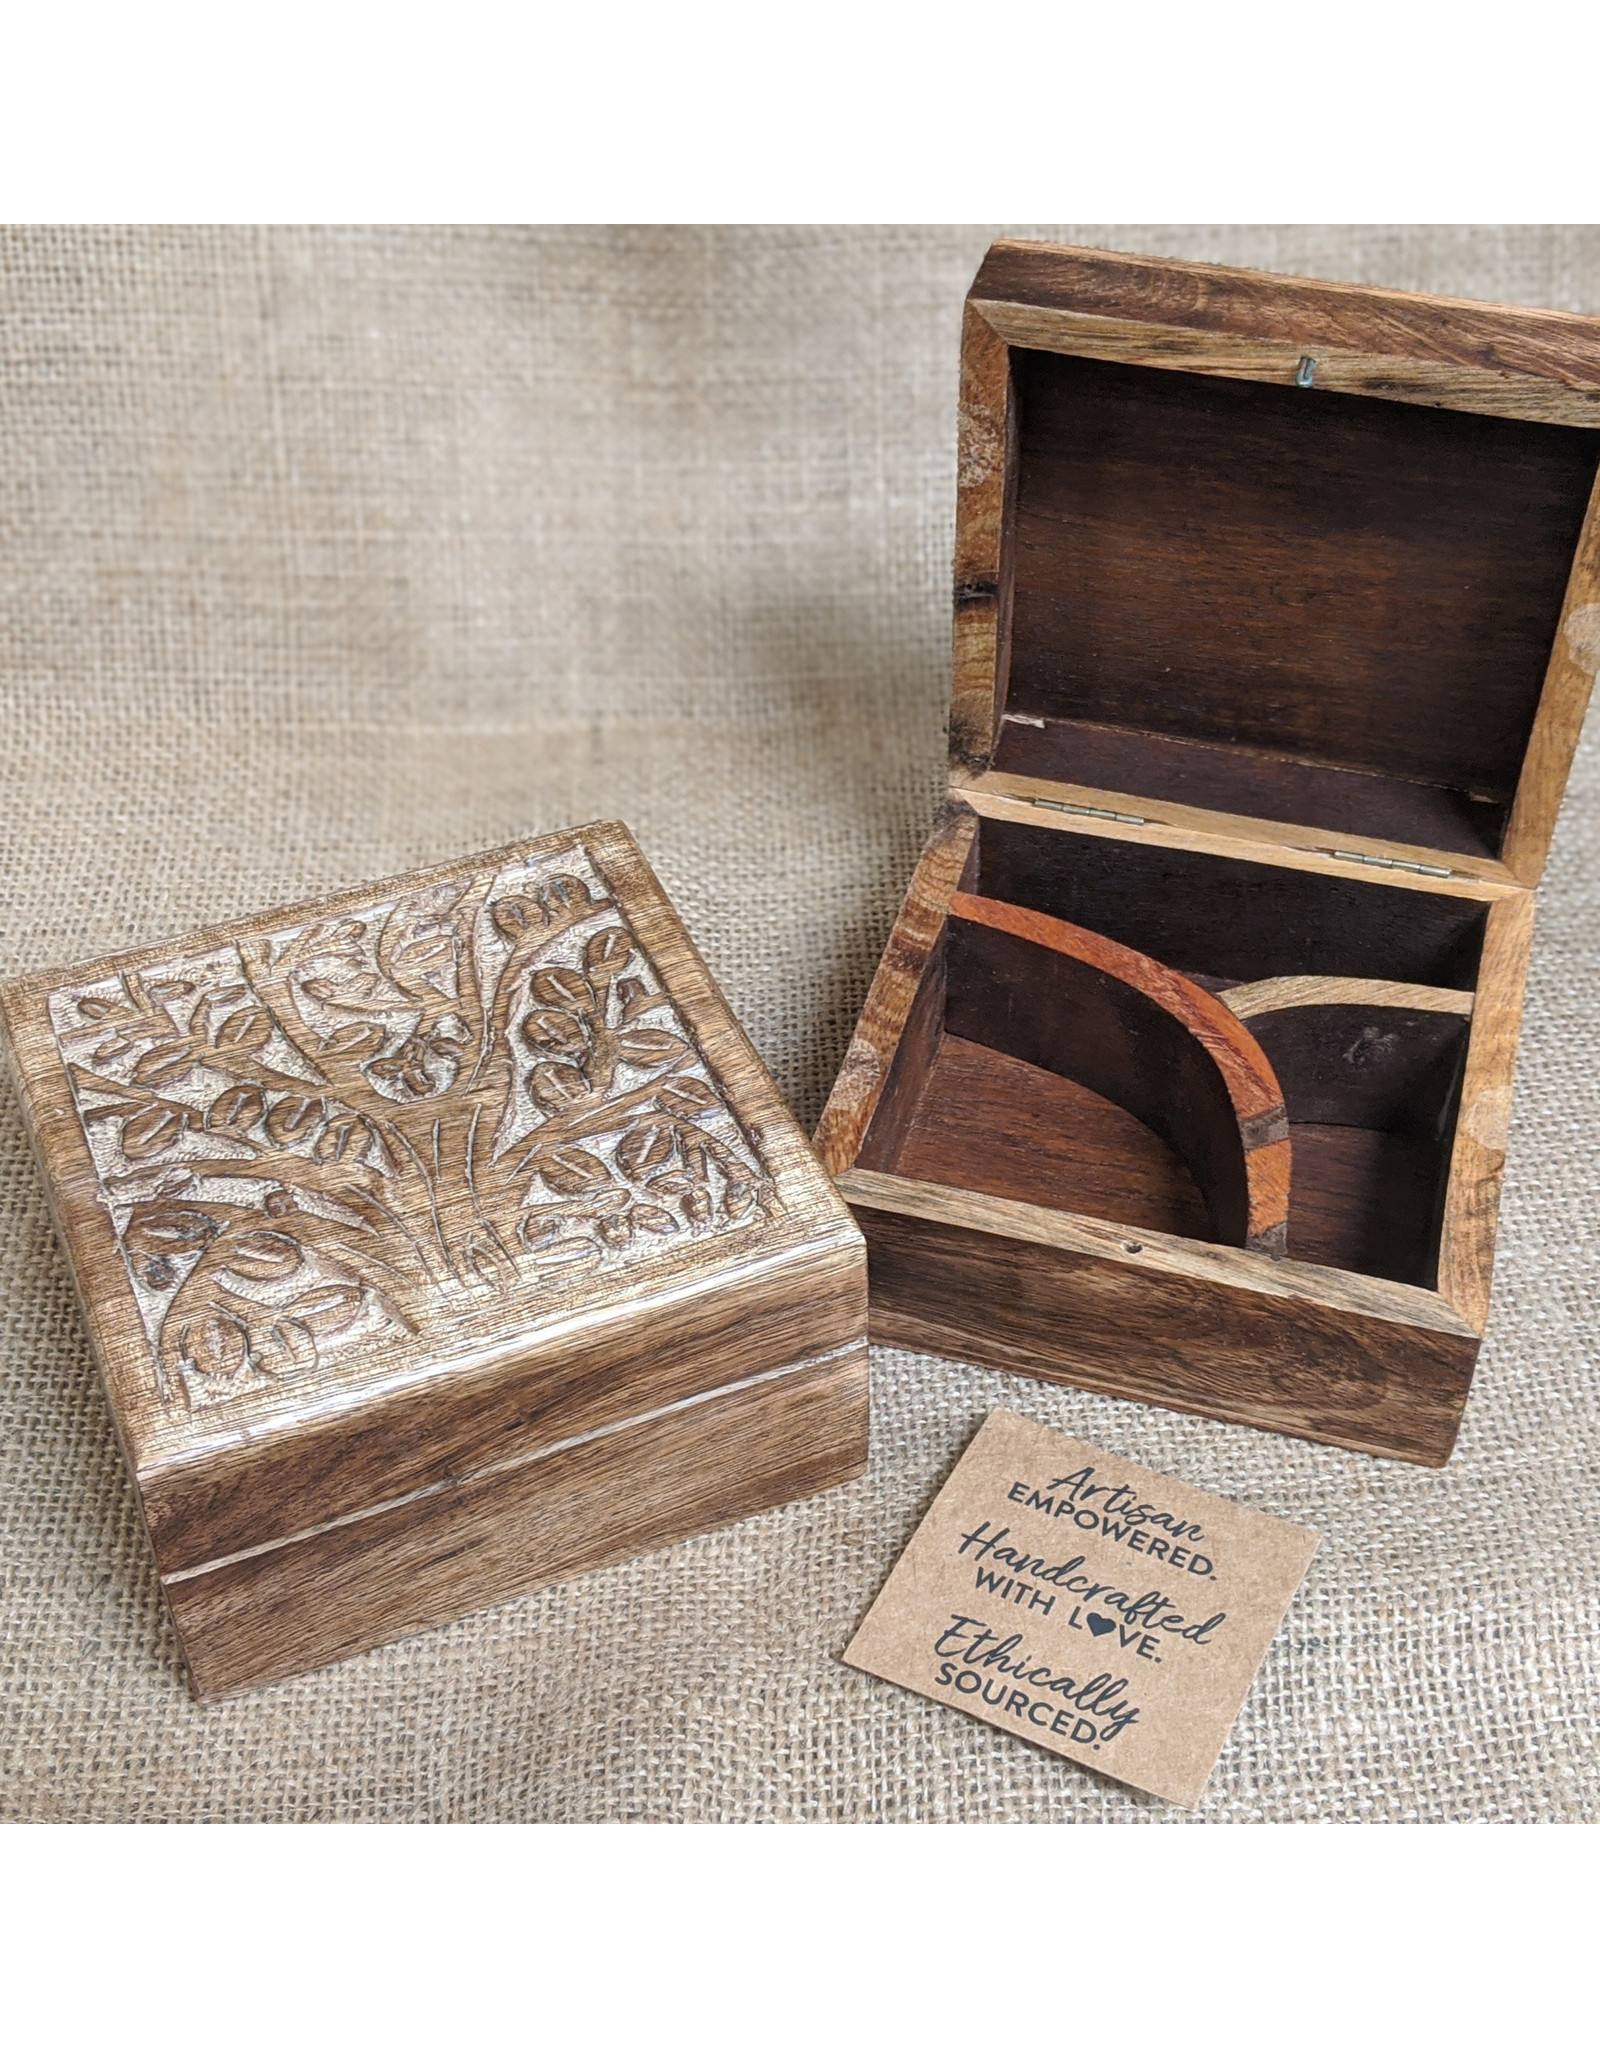 Matr Boomie Aranyani Compartment Box